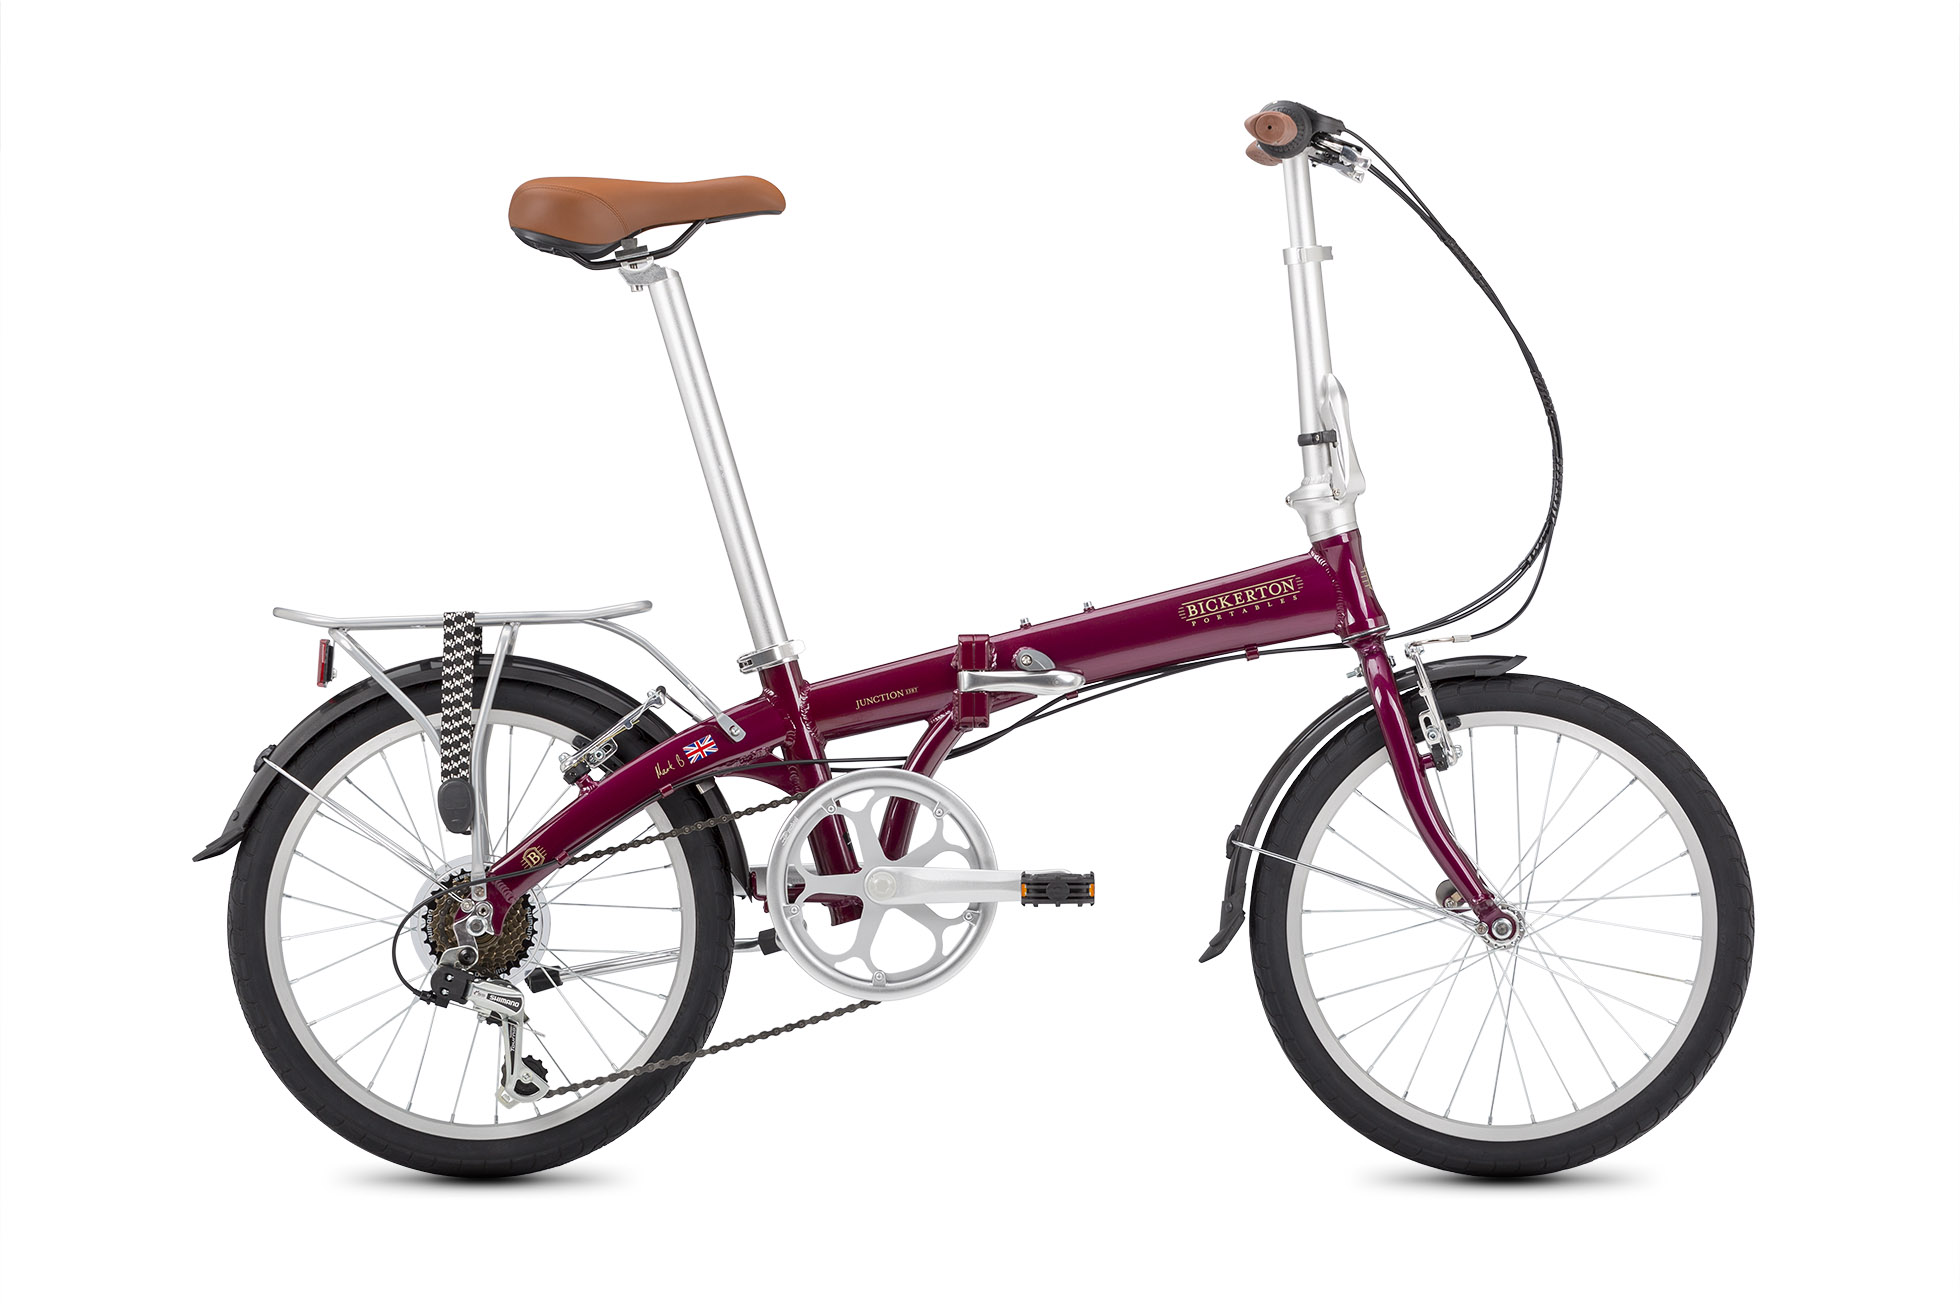 BICICLETA PLEGABLE BICKERTON JUNCTION 1307 ROD 20